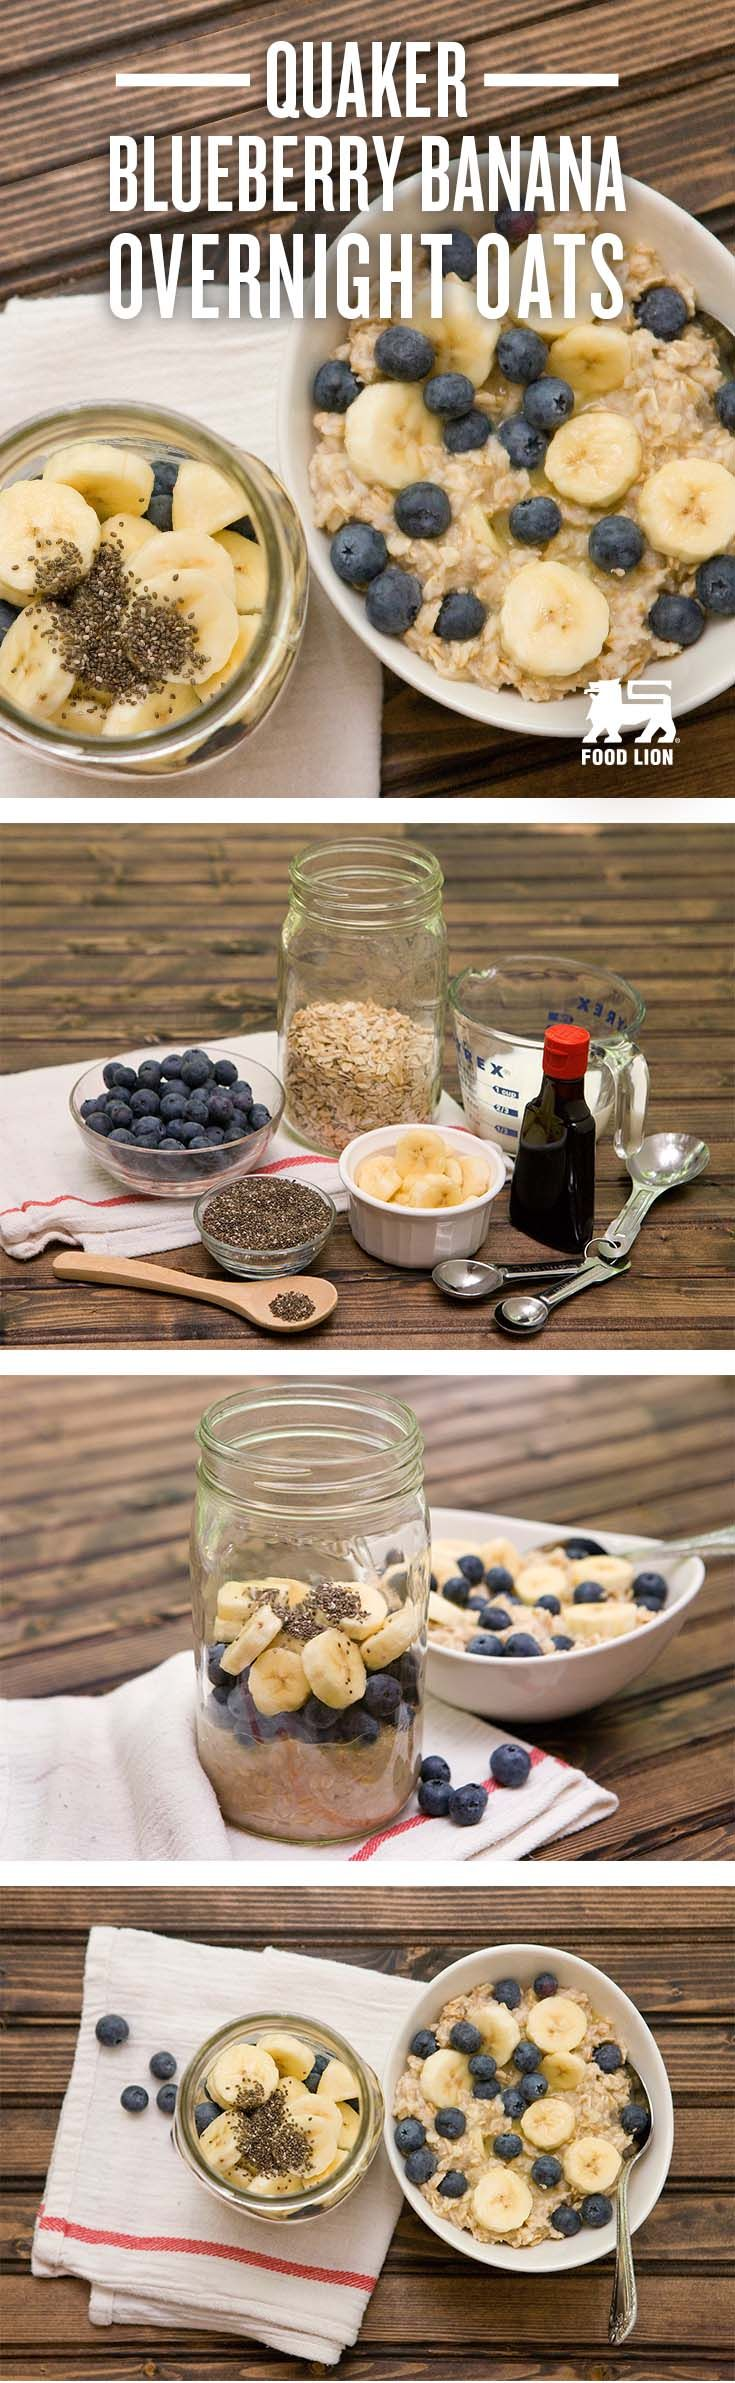 An easy prepping of Blueberries and Banana Overnight Quaker® Oats is extremely rewarding for a delicious and healthy kick-start to your day, every day.